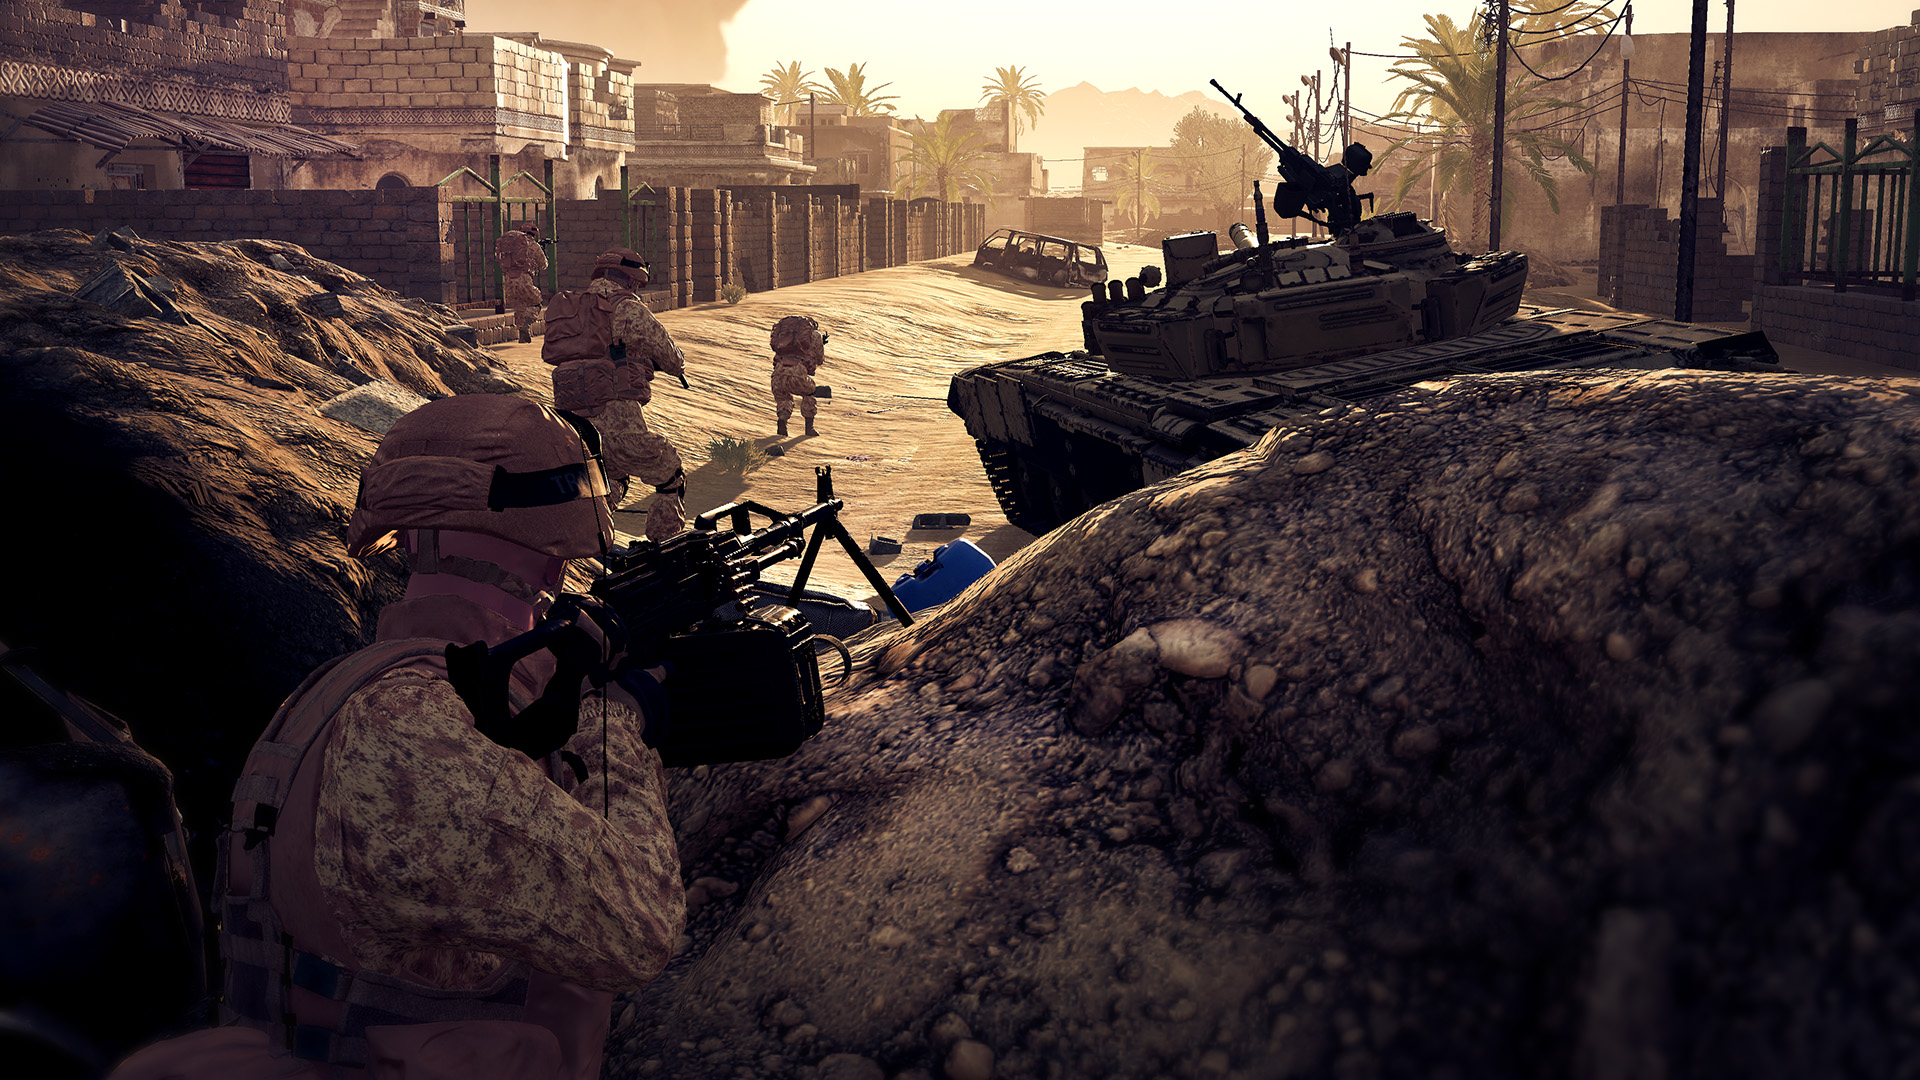 Squad exits Early Access with full Steam release after five years